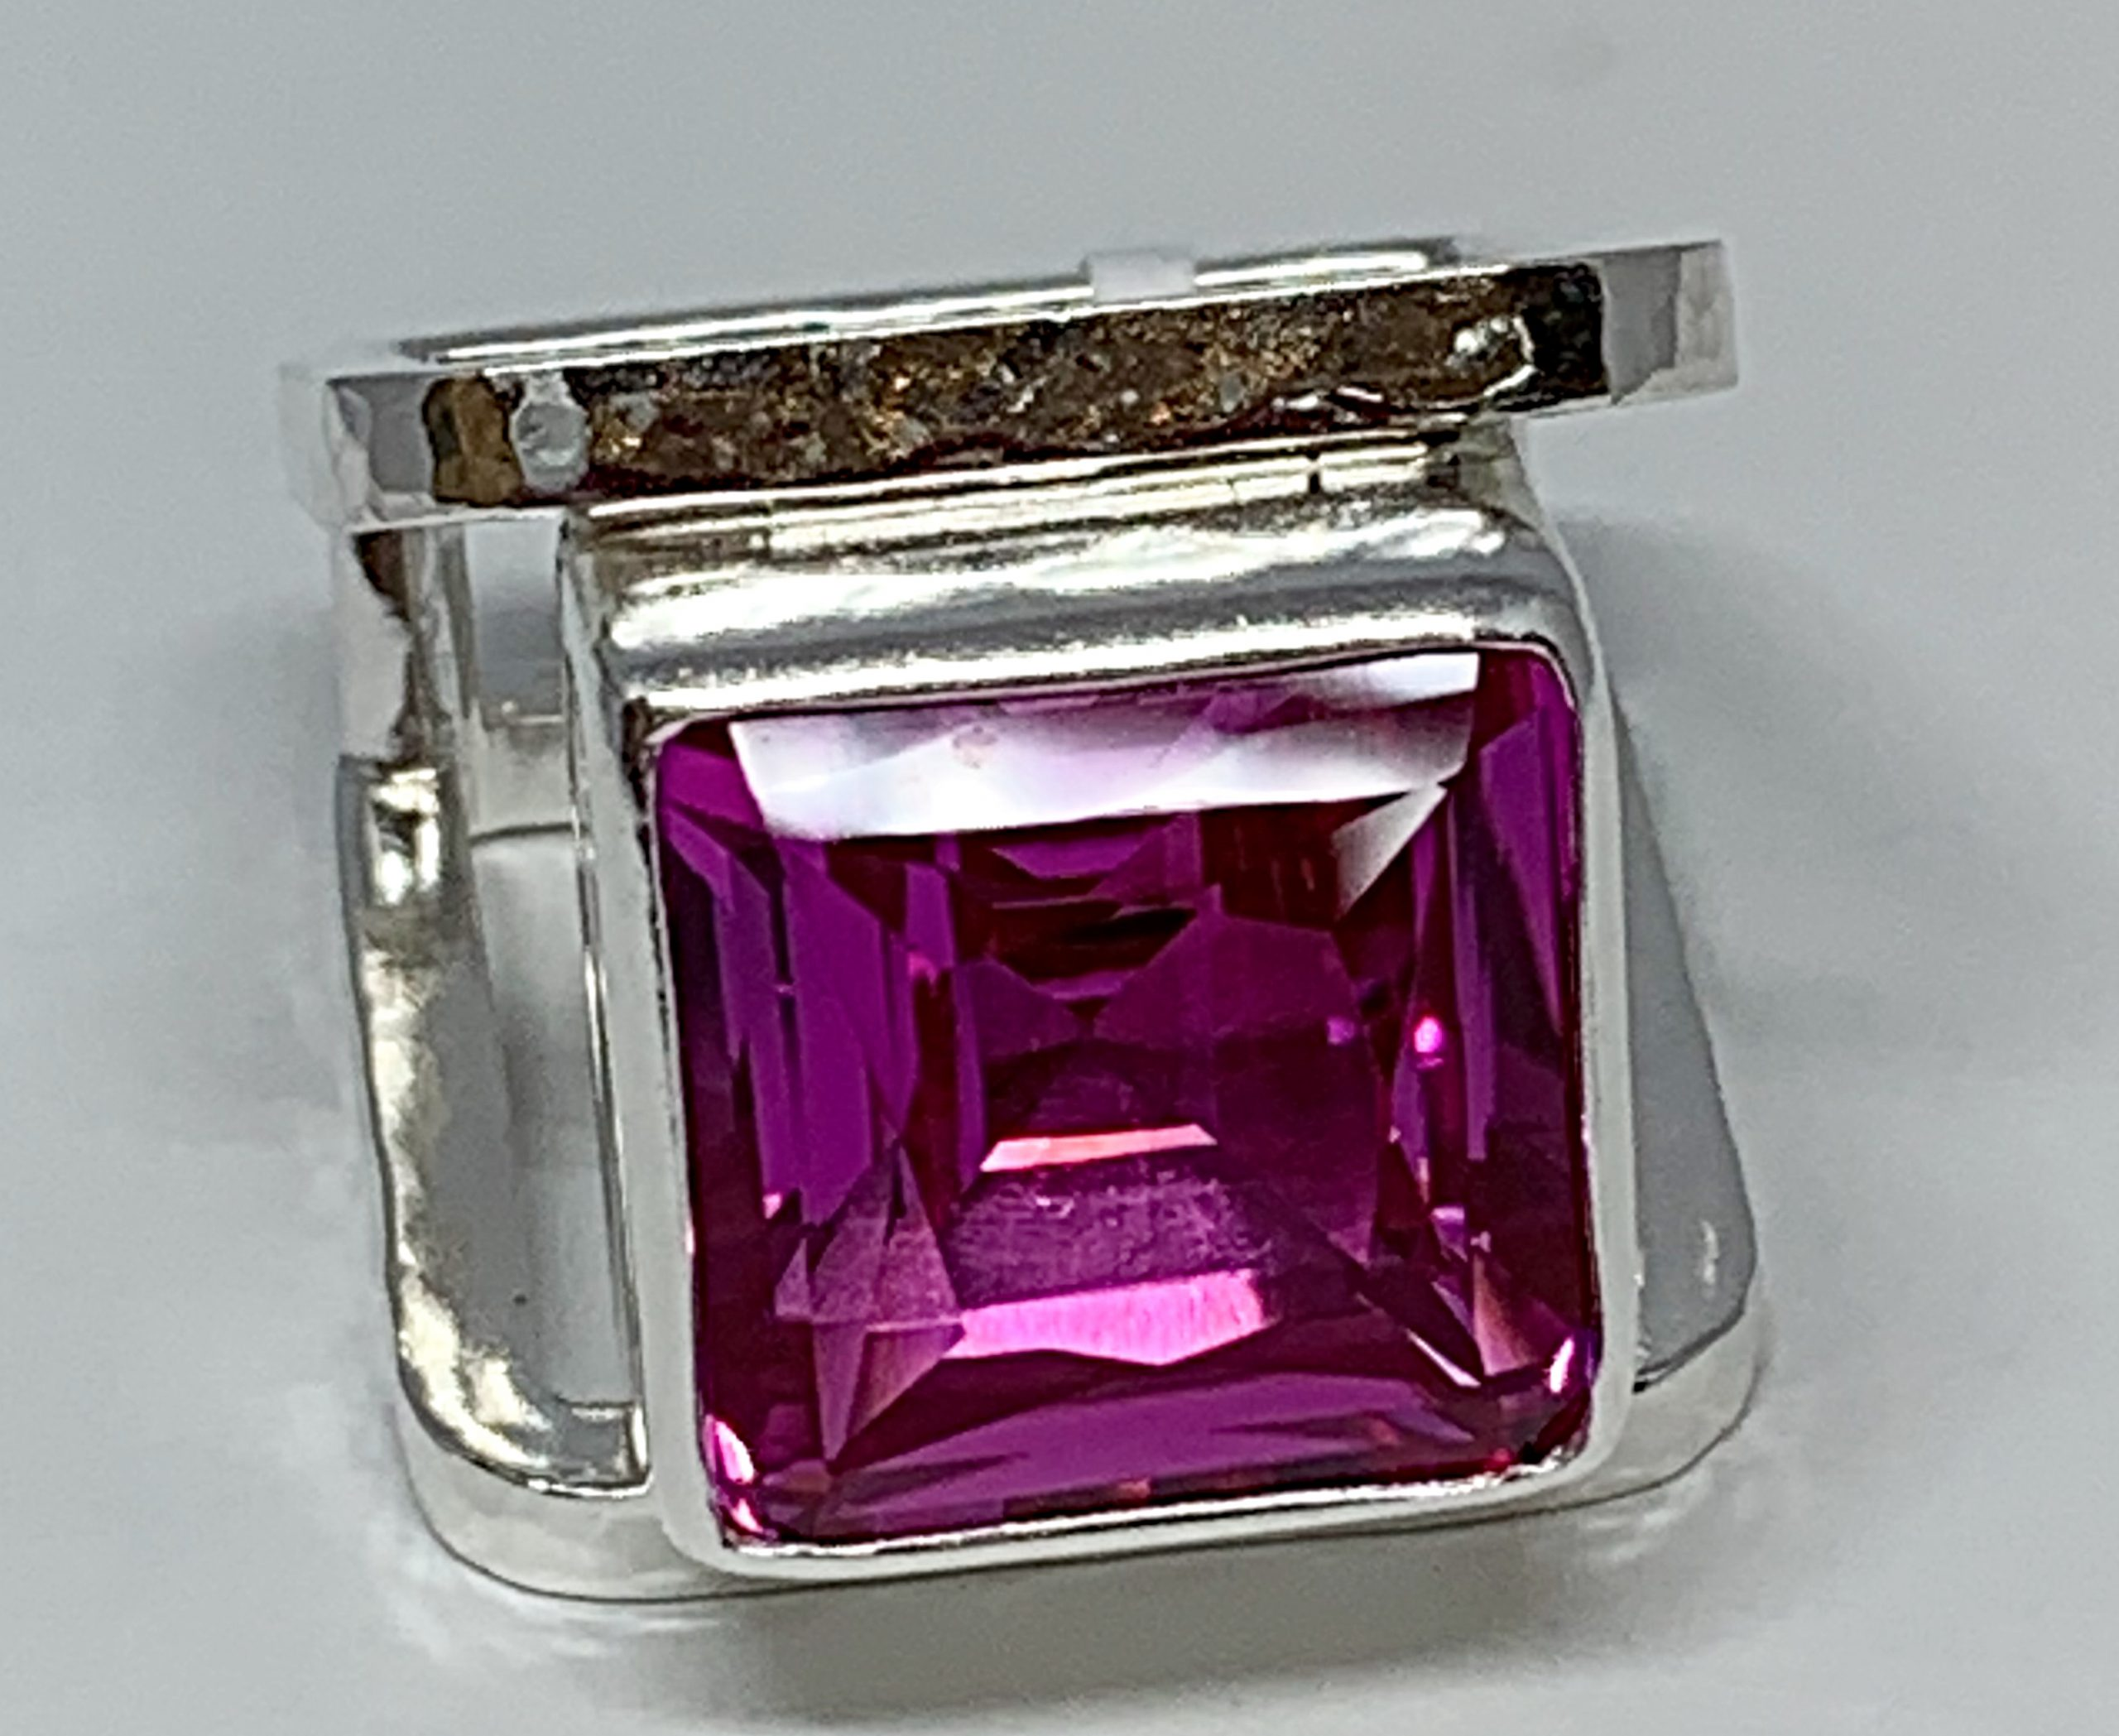 Handmade sterling silver and pink topaz ring by A&R Jewellery | Effusion Art Gallery + Cast Glass Studio, Invermere BC